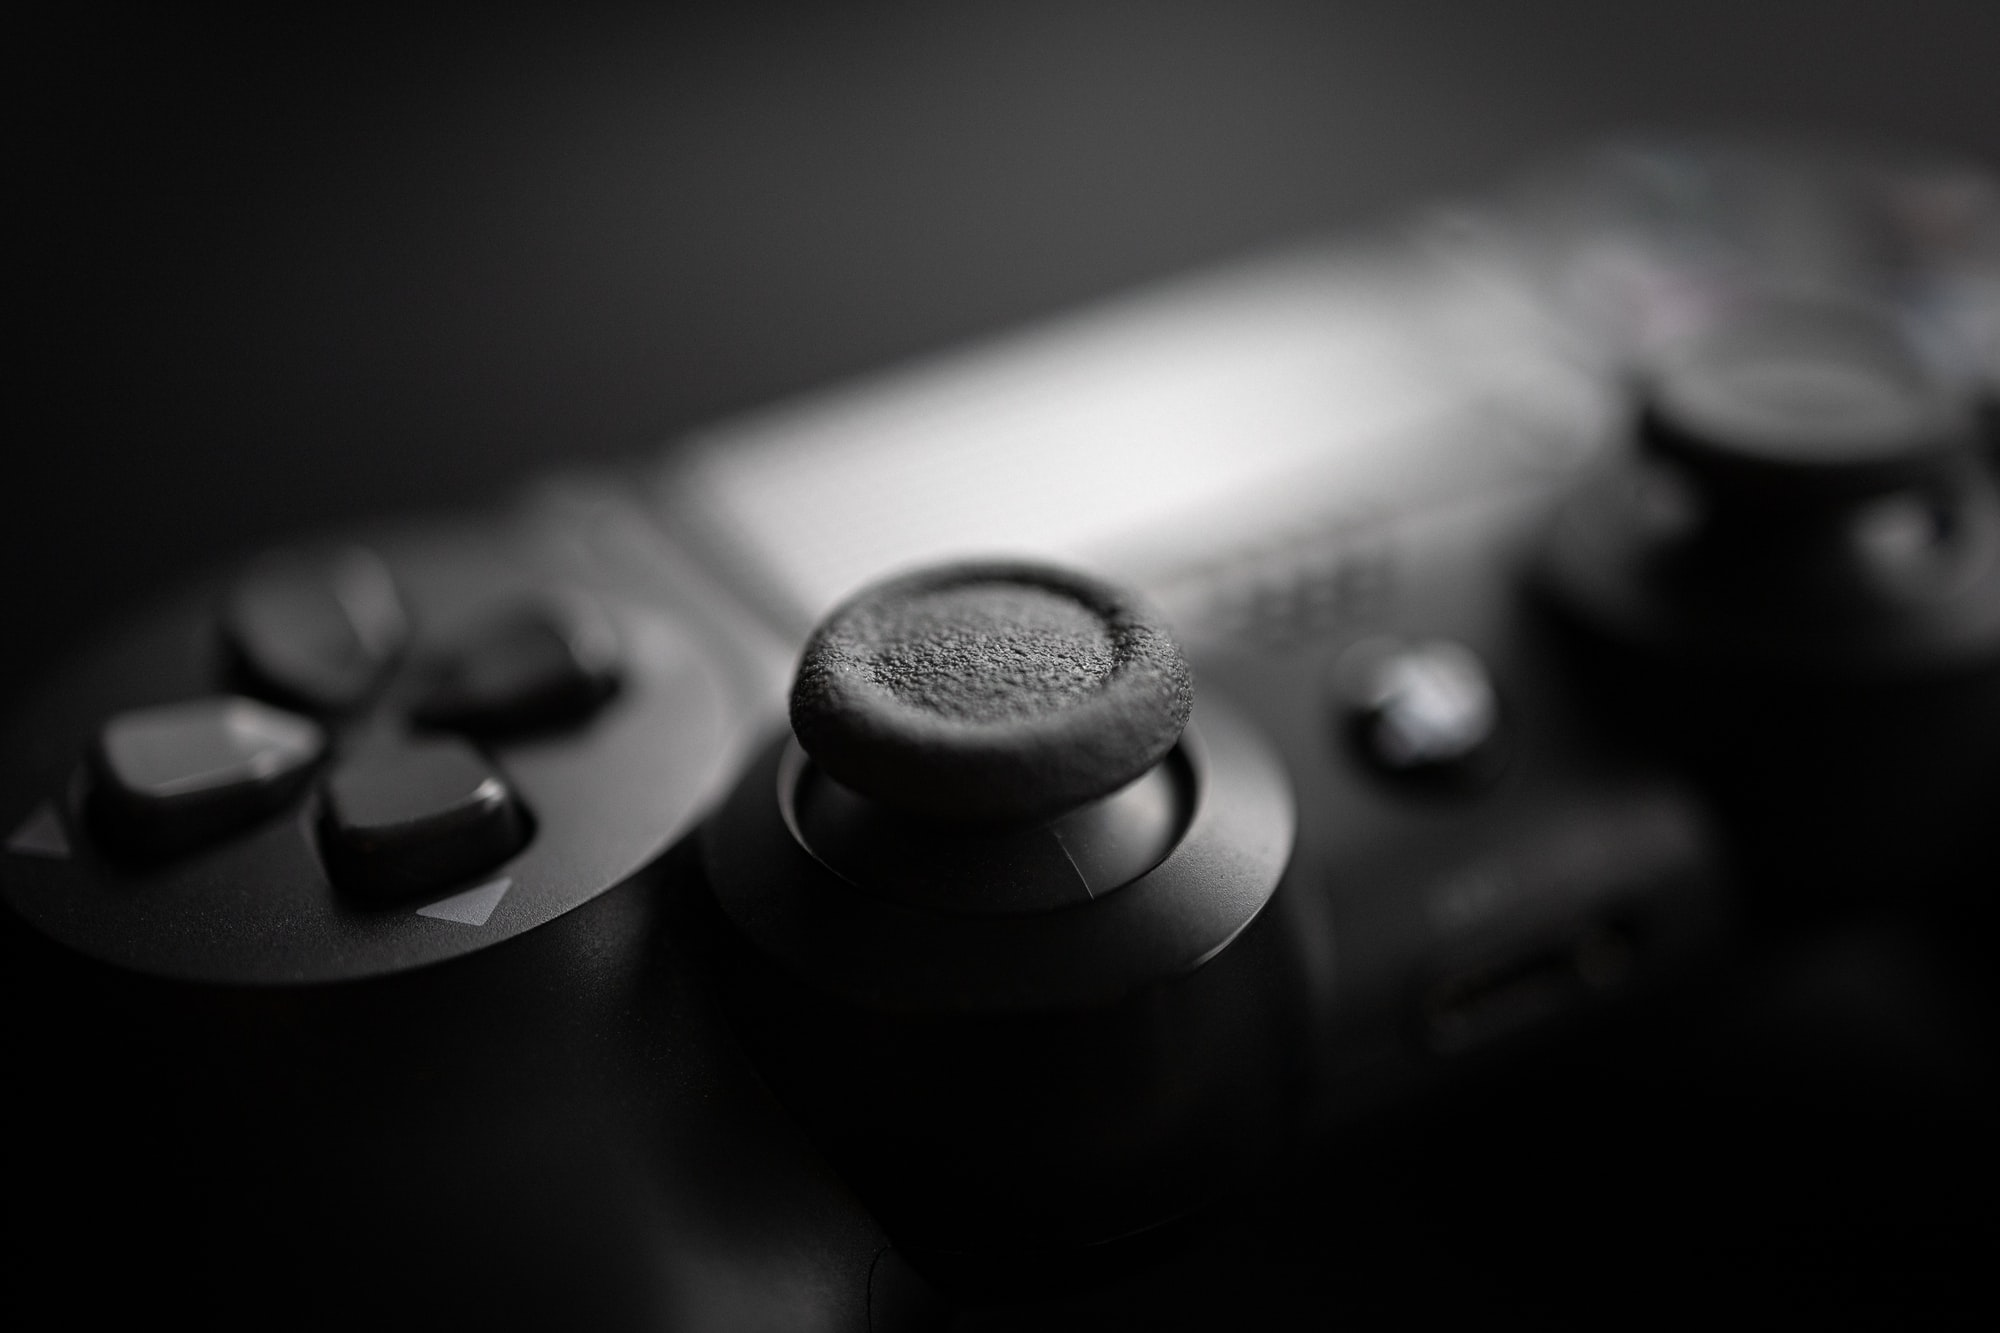 Close-up of a PlayStation 4 controller.